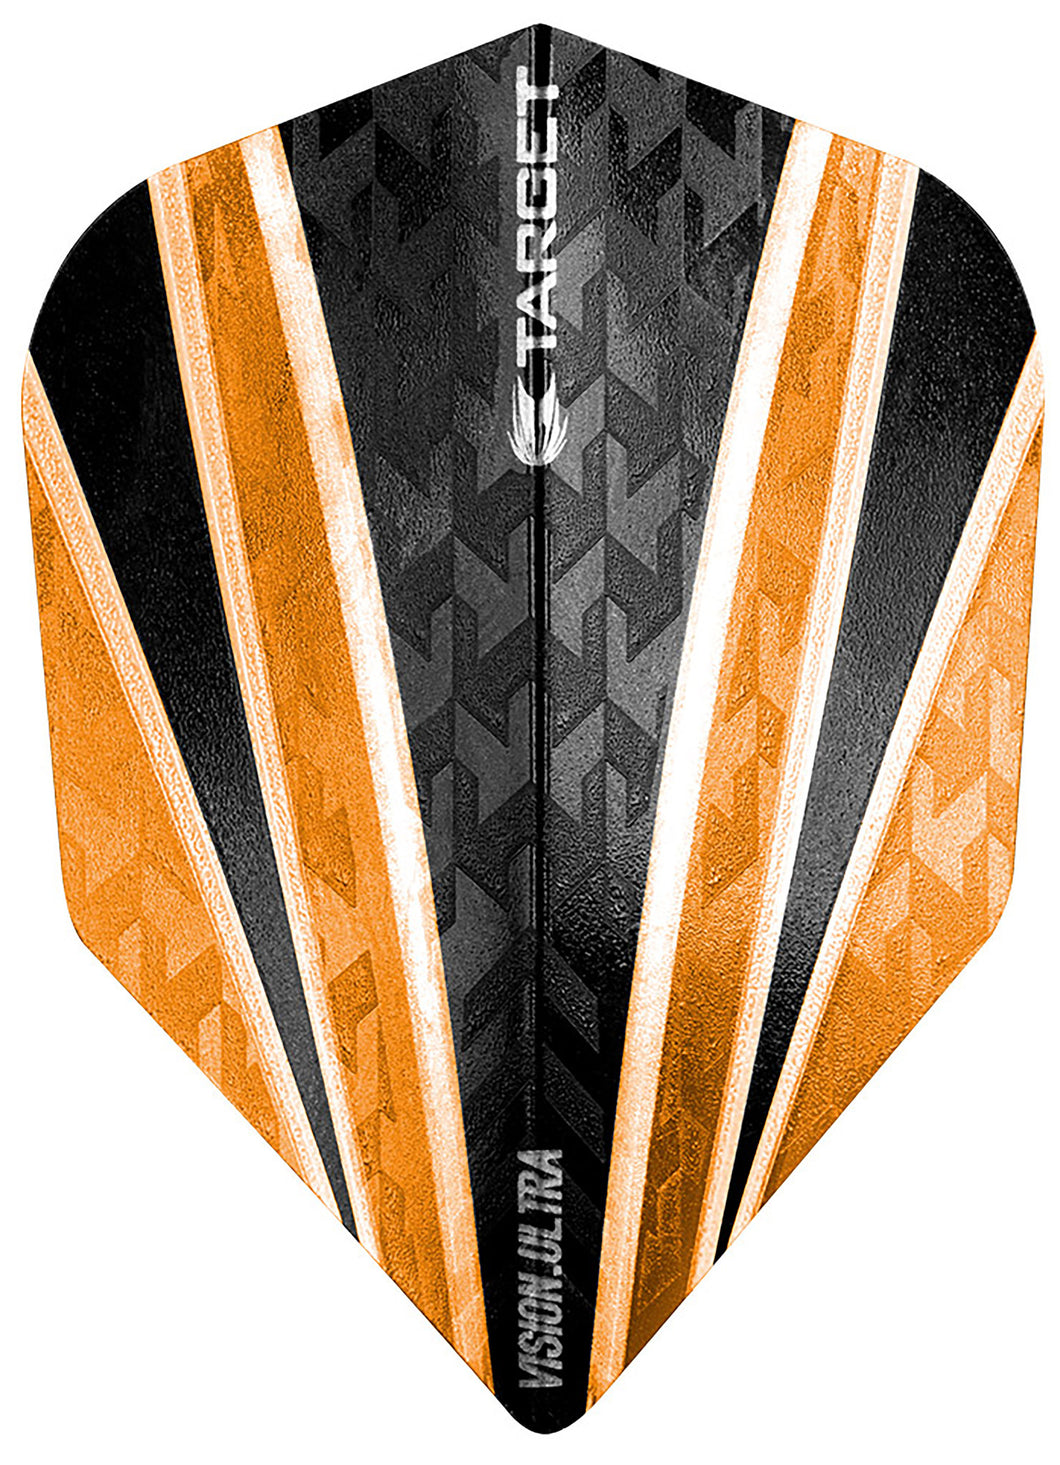 Target Vision Ultra Sail Orange Dart Flights